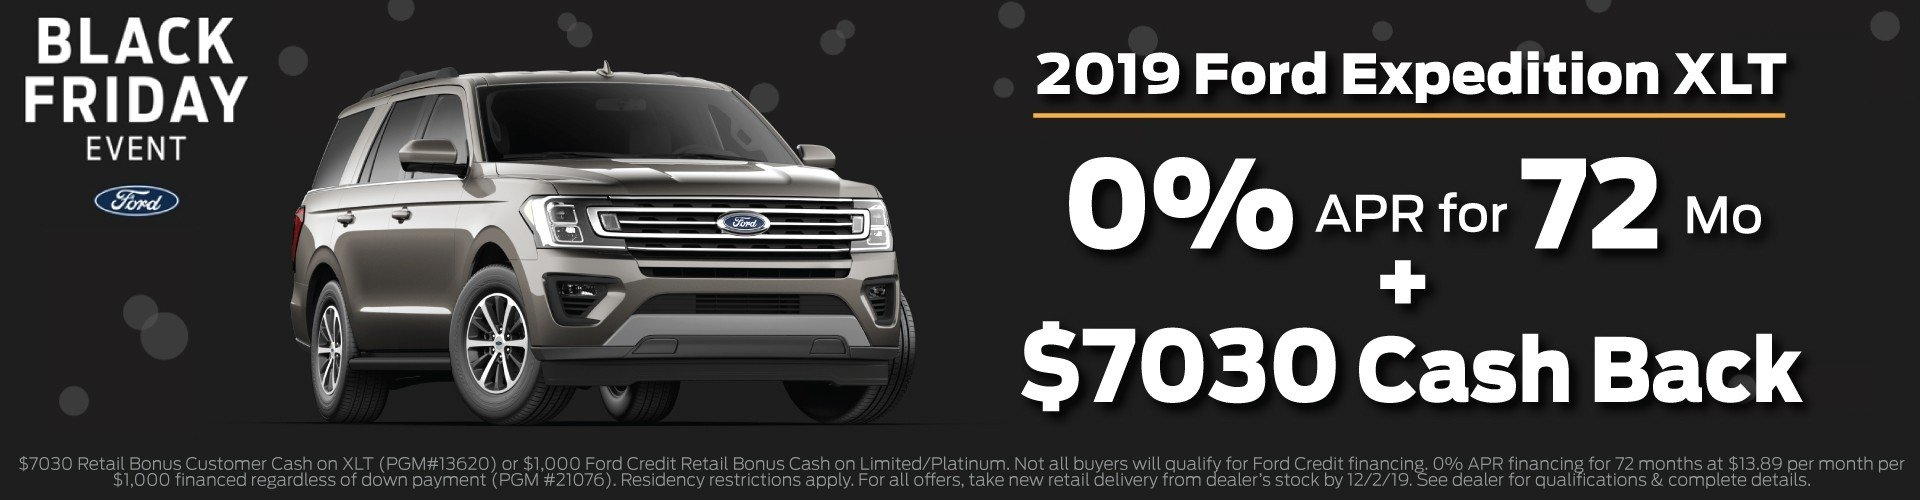 2019 Ford Expedition Offer 12-2-19